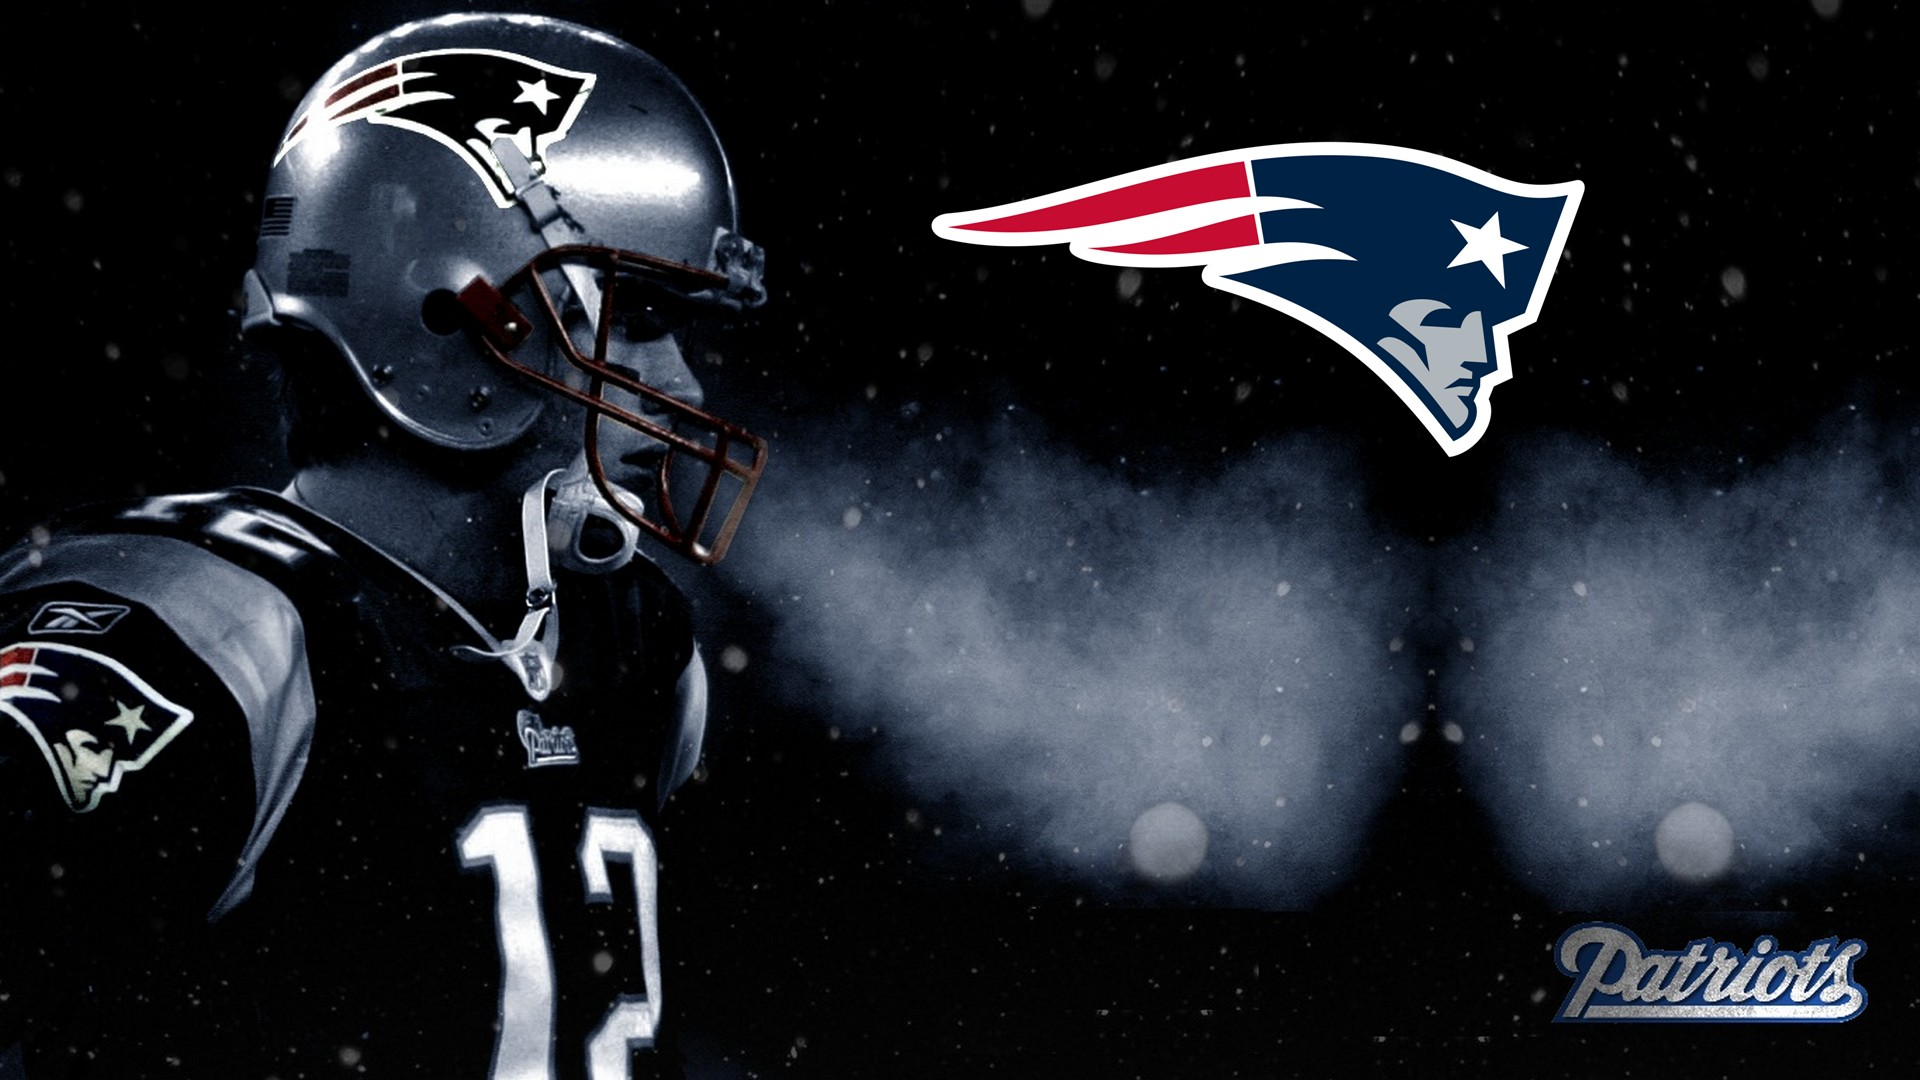 Patriots Wallpaper – Find The Right Wallpaper For Your Home